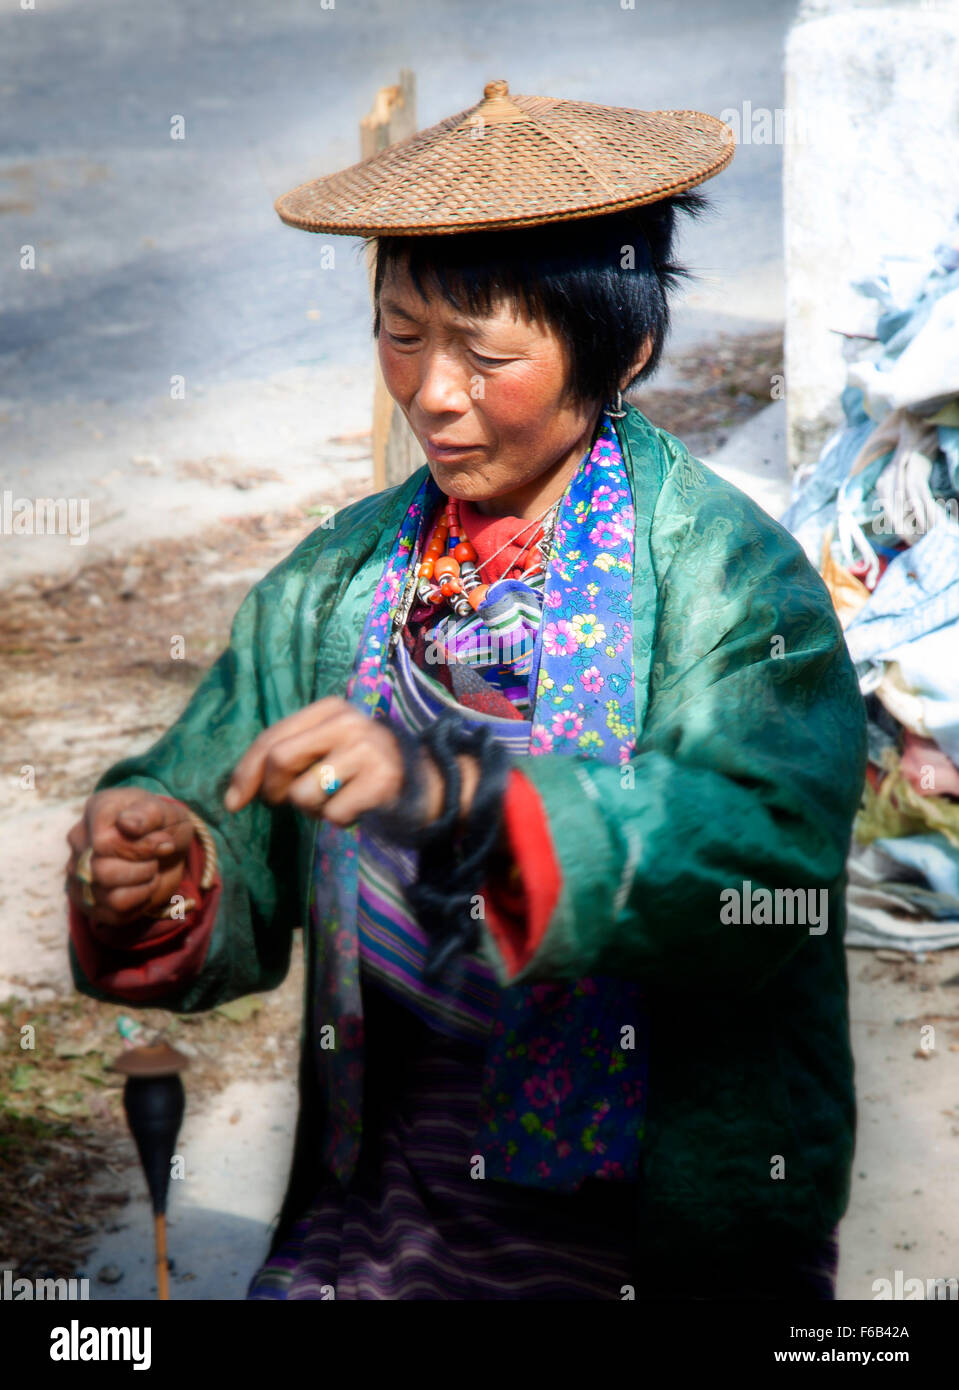 A woman spins yak wool into yarn in the high mountains of Bhutan. - Stock Image